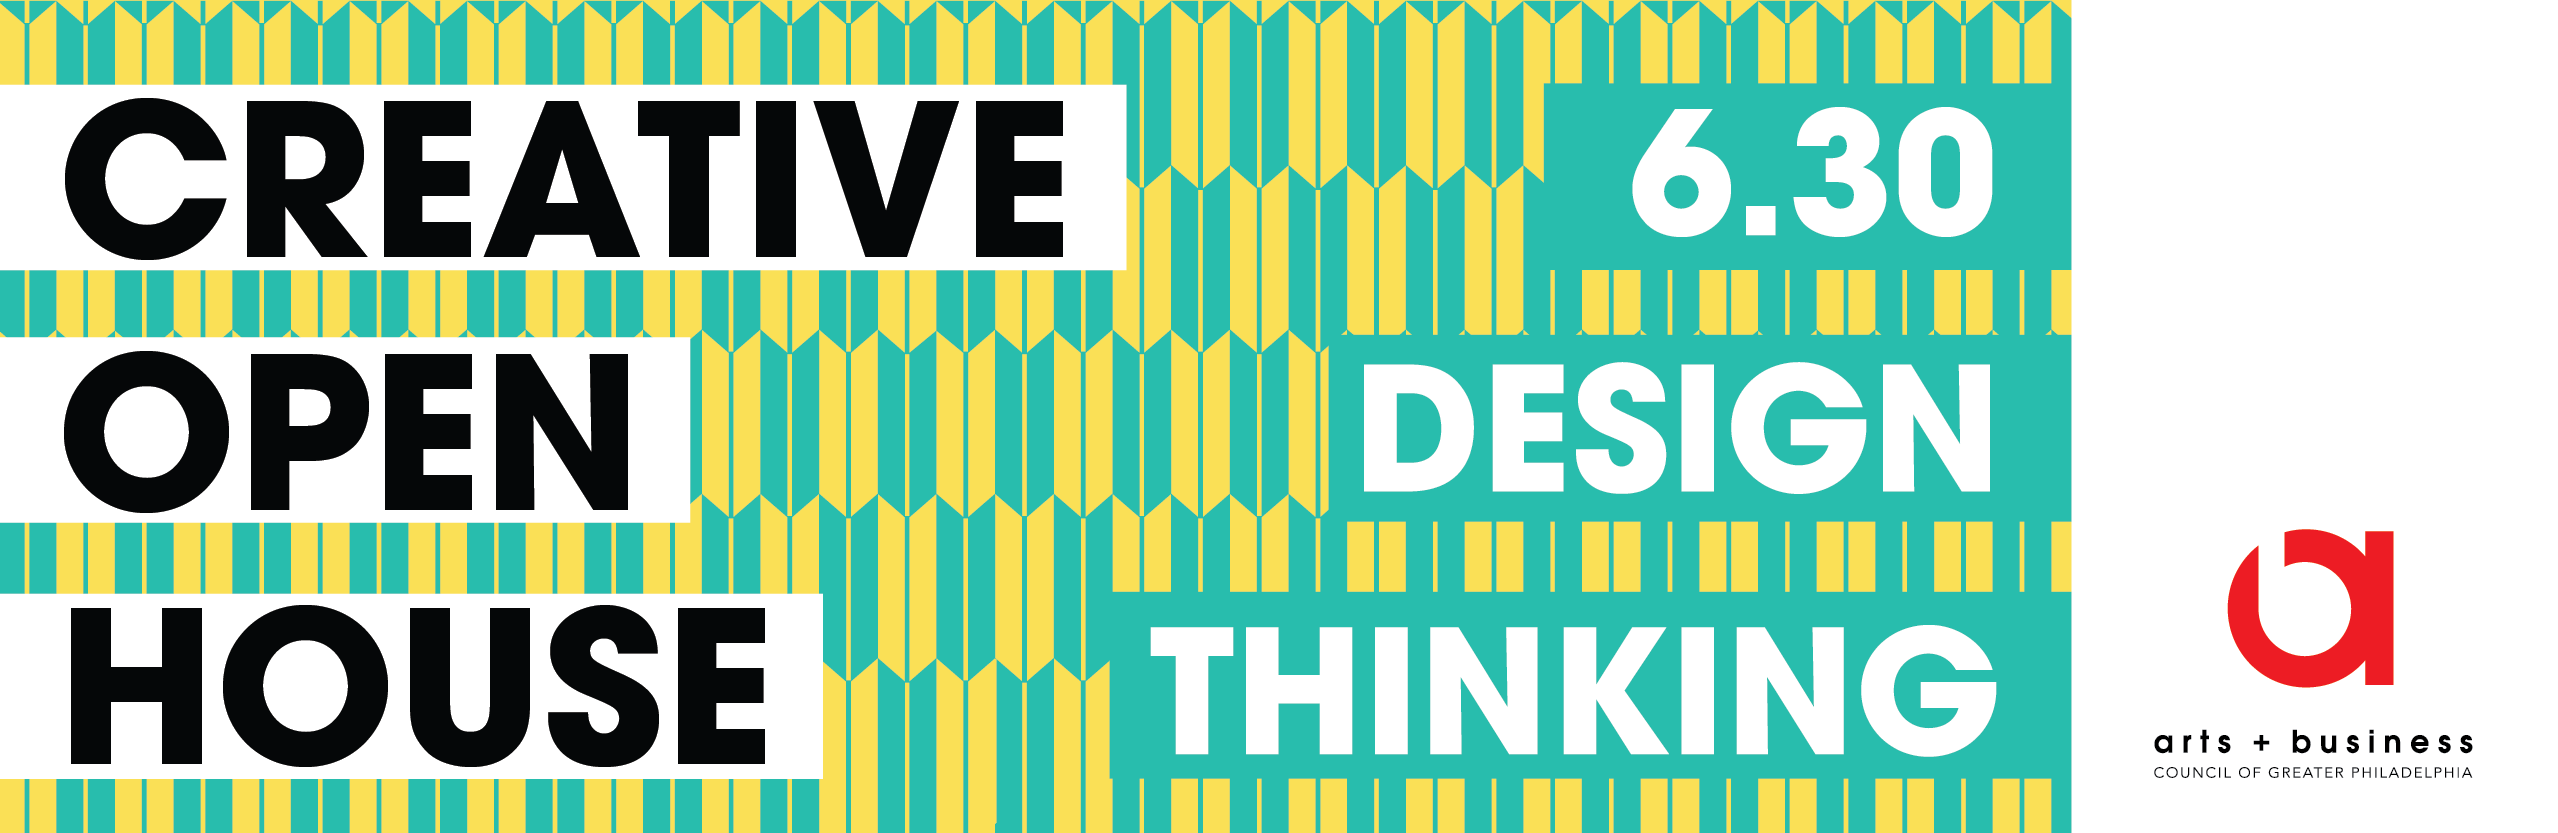 Creative Open House: Design Thinking